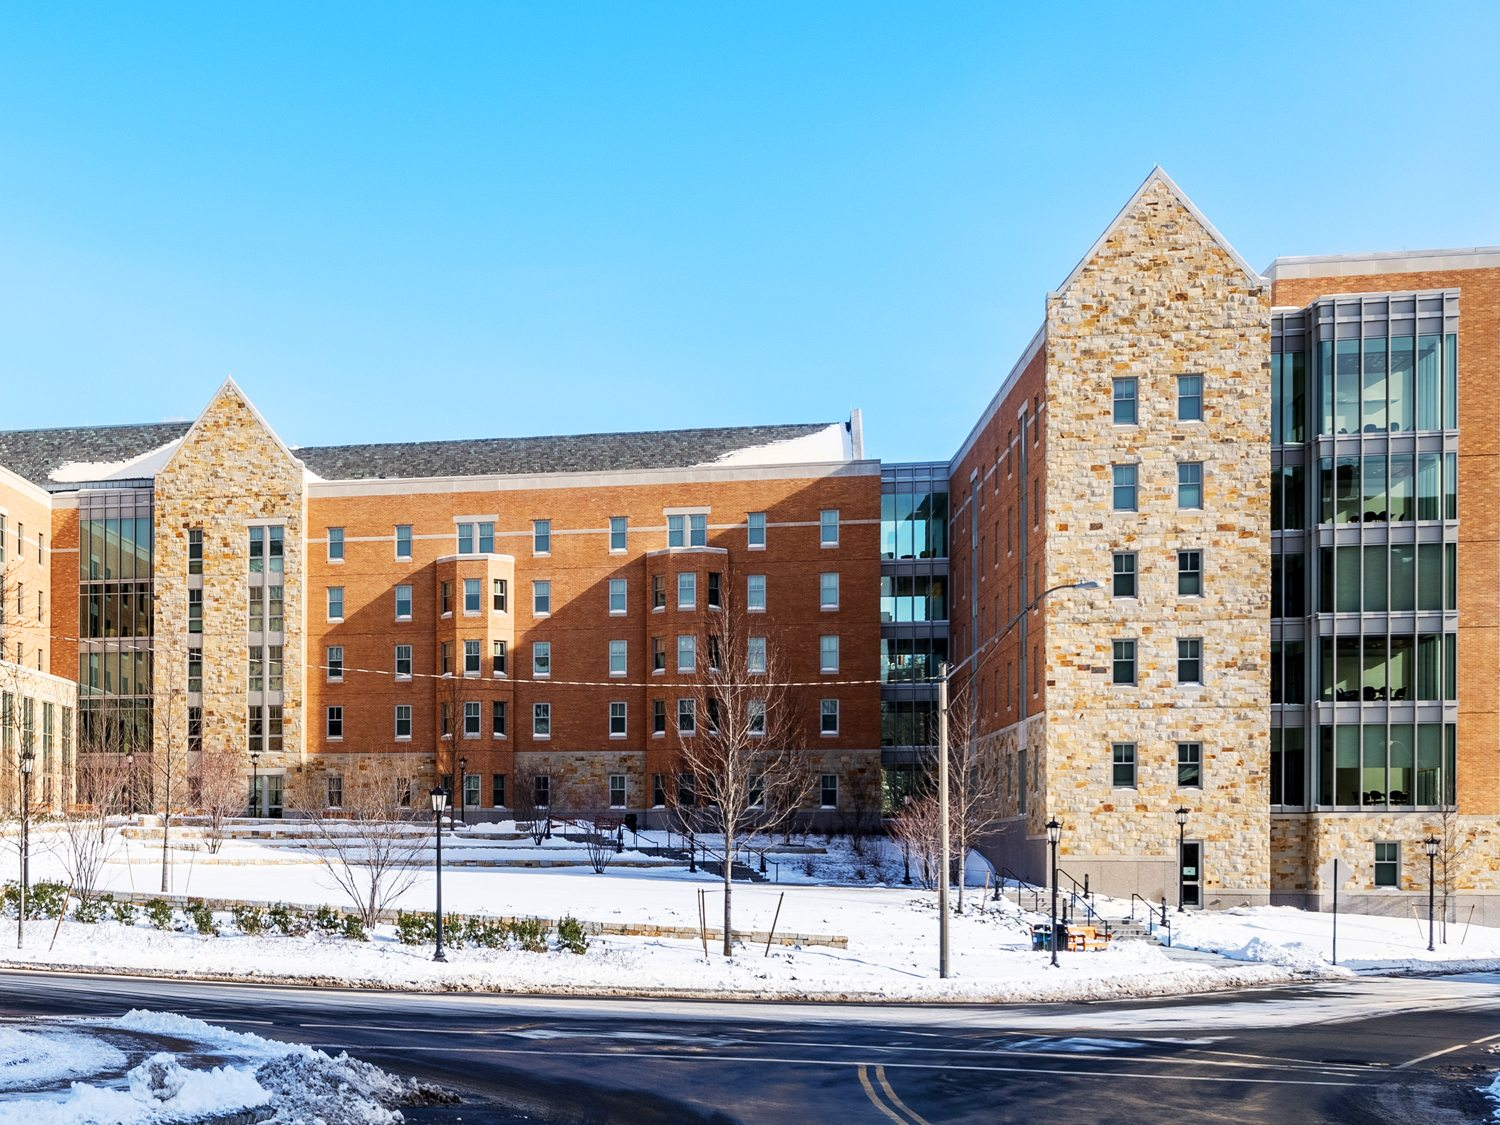 Boston College / Thomas More Residence Hall